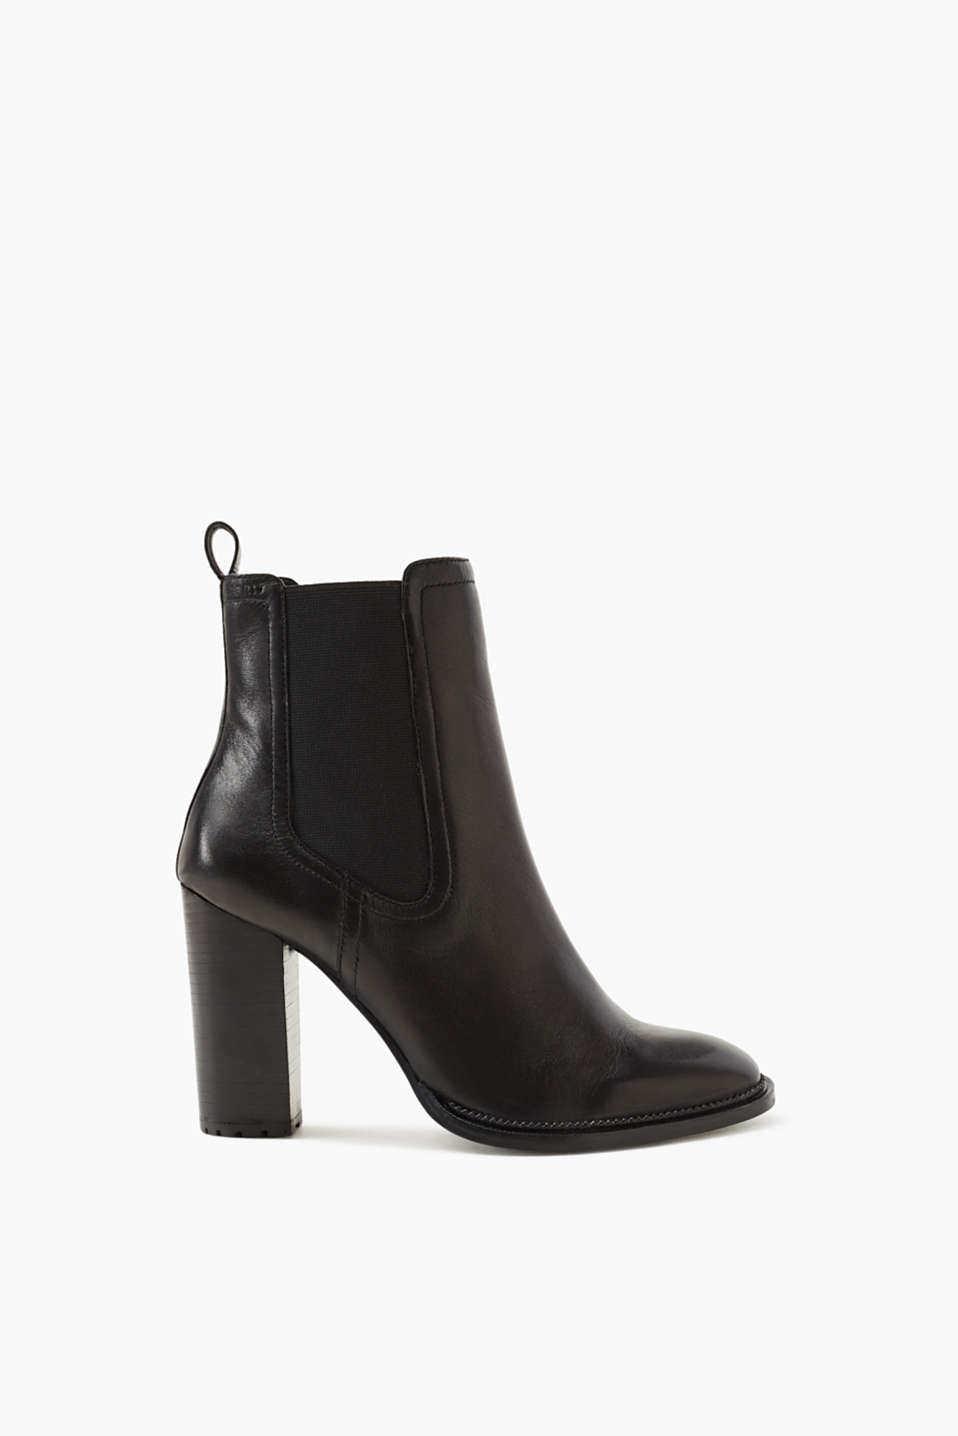 Esprit - Bottines en cuir cool à talons bottier